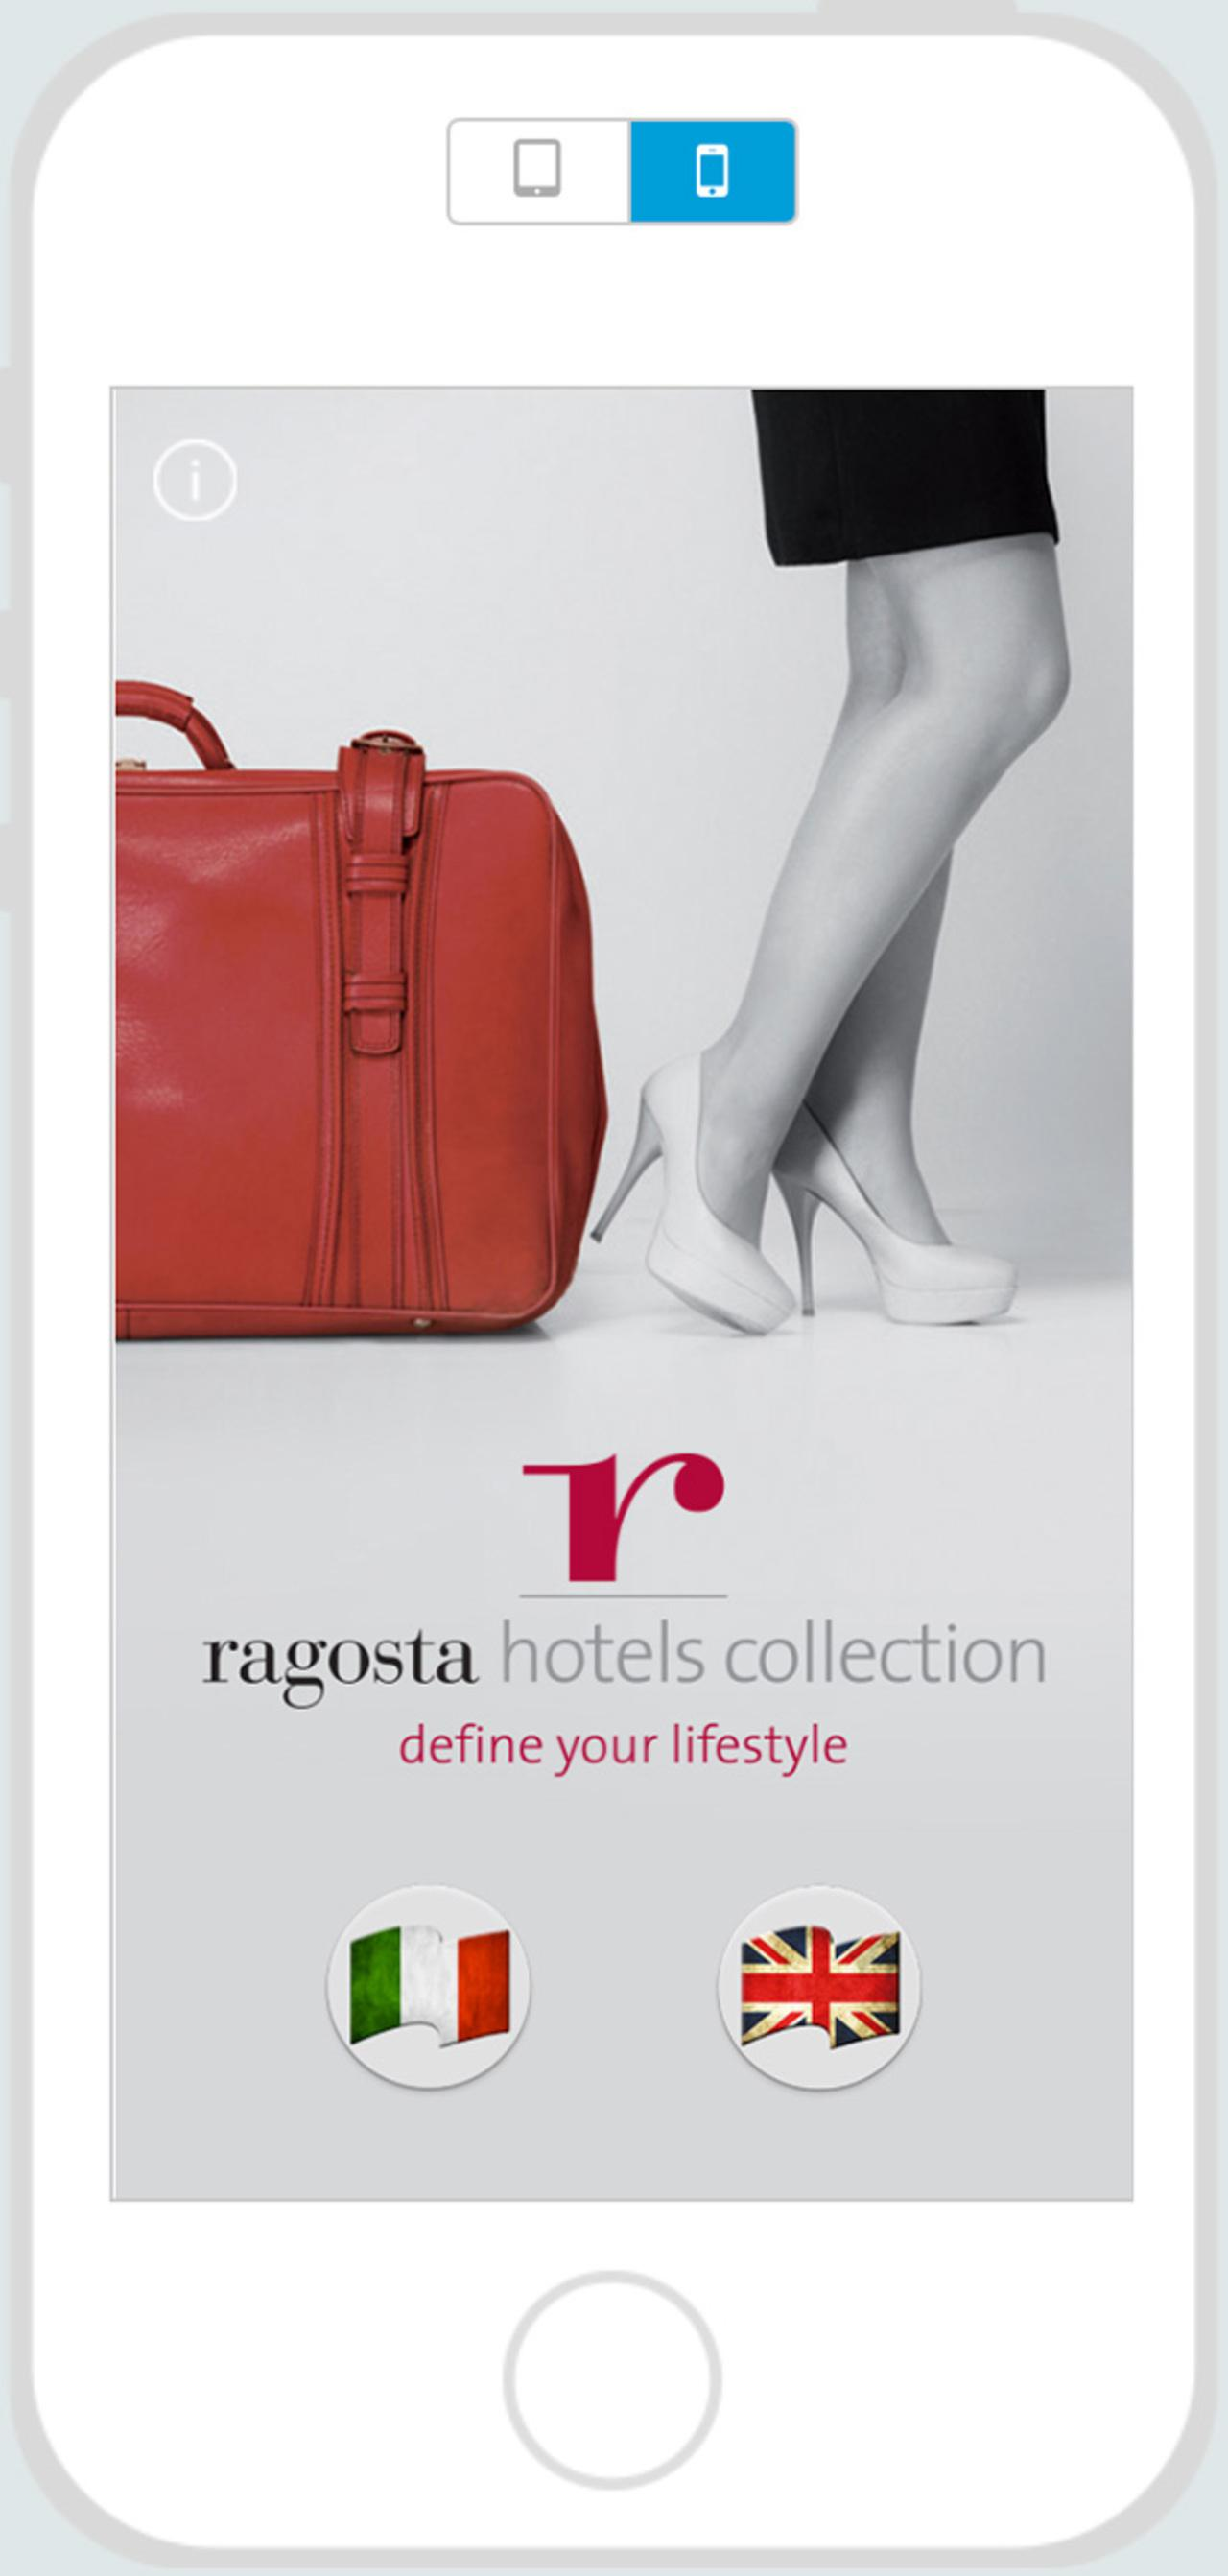 RAGOSTA HOTELS COLLECTION